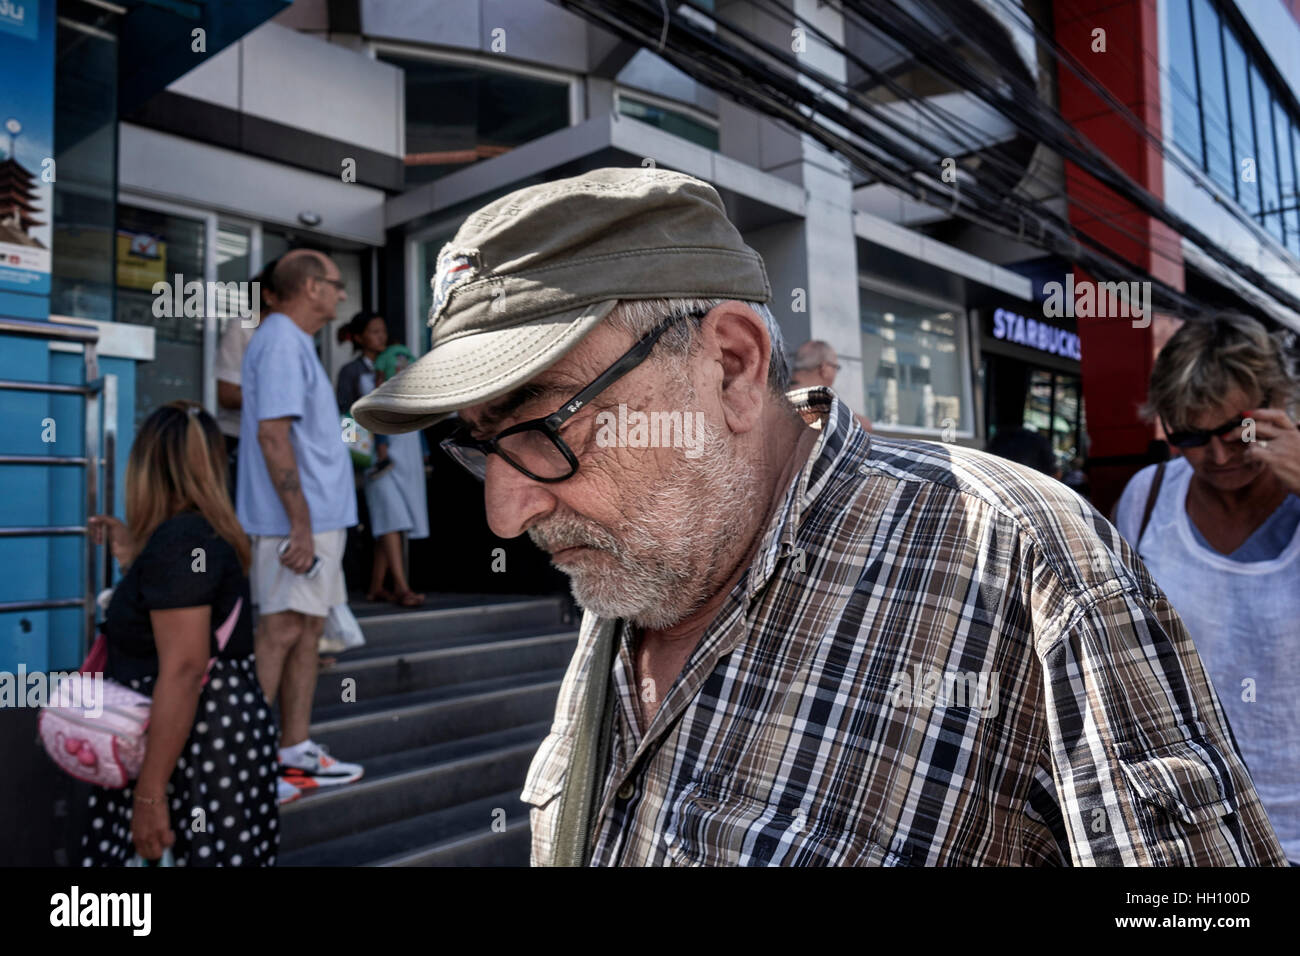 Elderly man pondering in thought - Stock Image